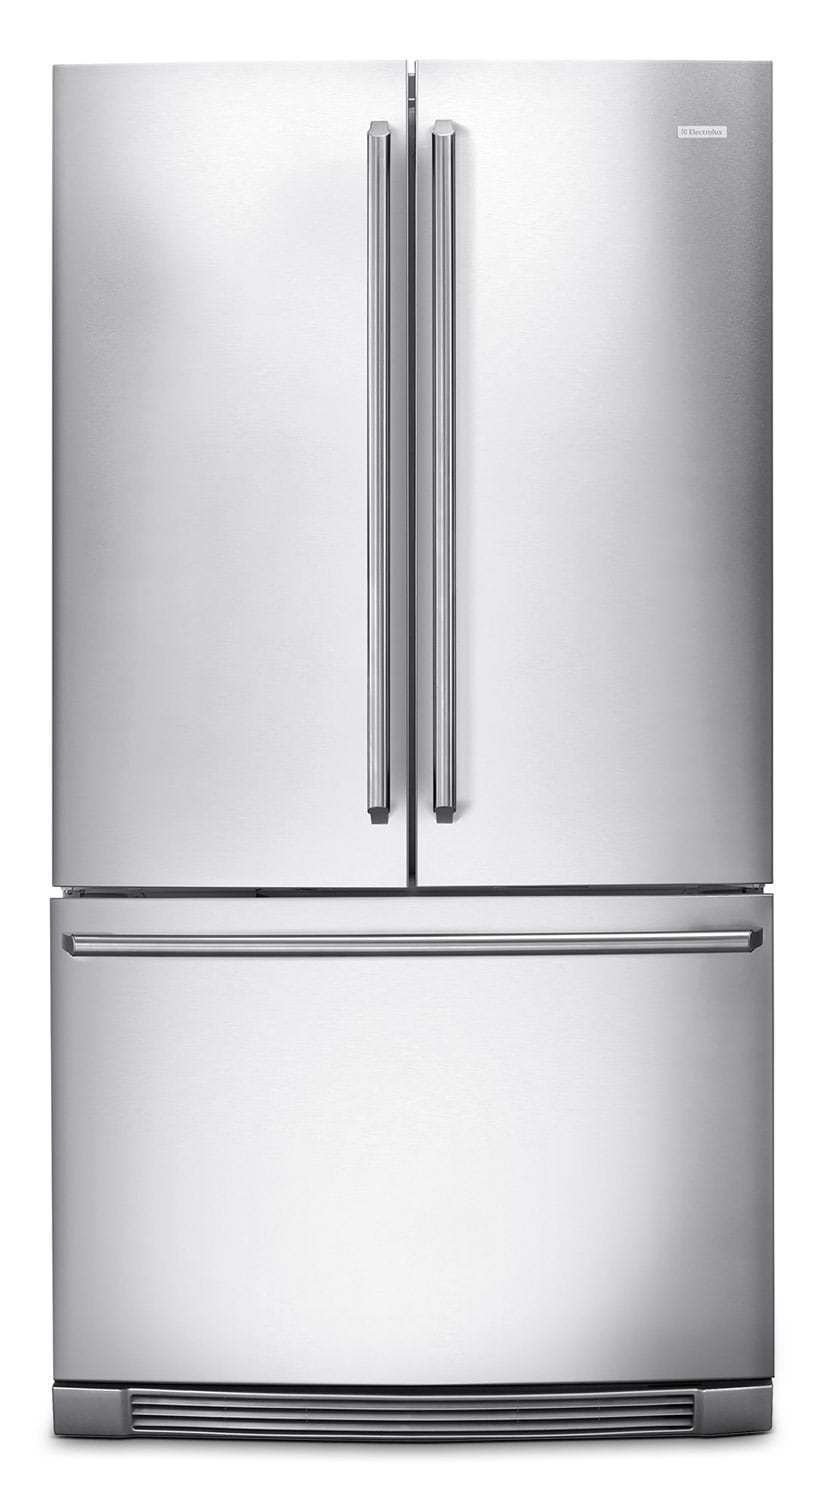 Refrigerators and Freezers - Electrolux Stainless Steel Counter-Depth French Door Refrigerator (22.55 Cu. Ft.) - EI23BC30KS